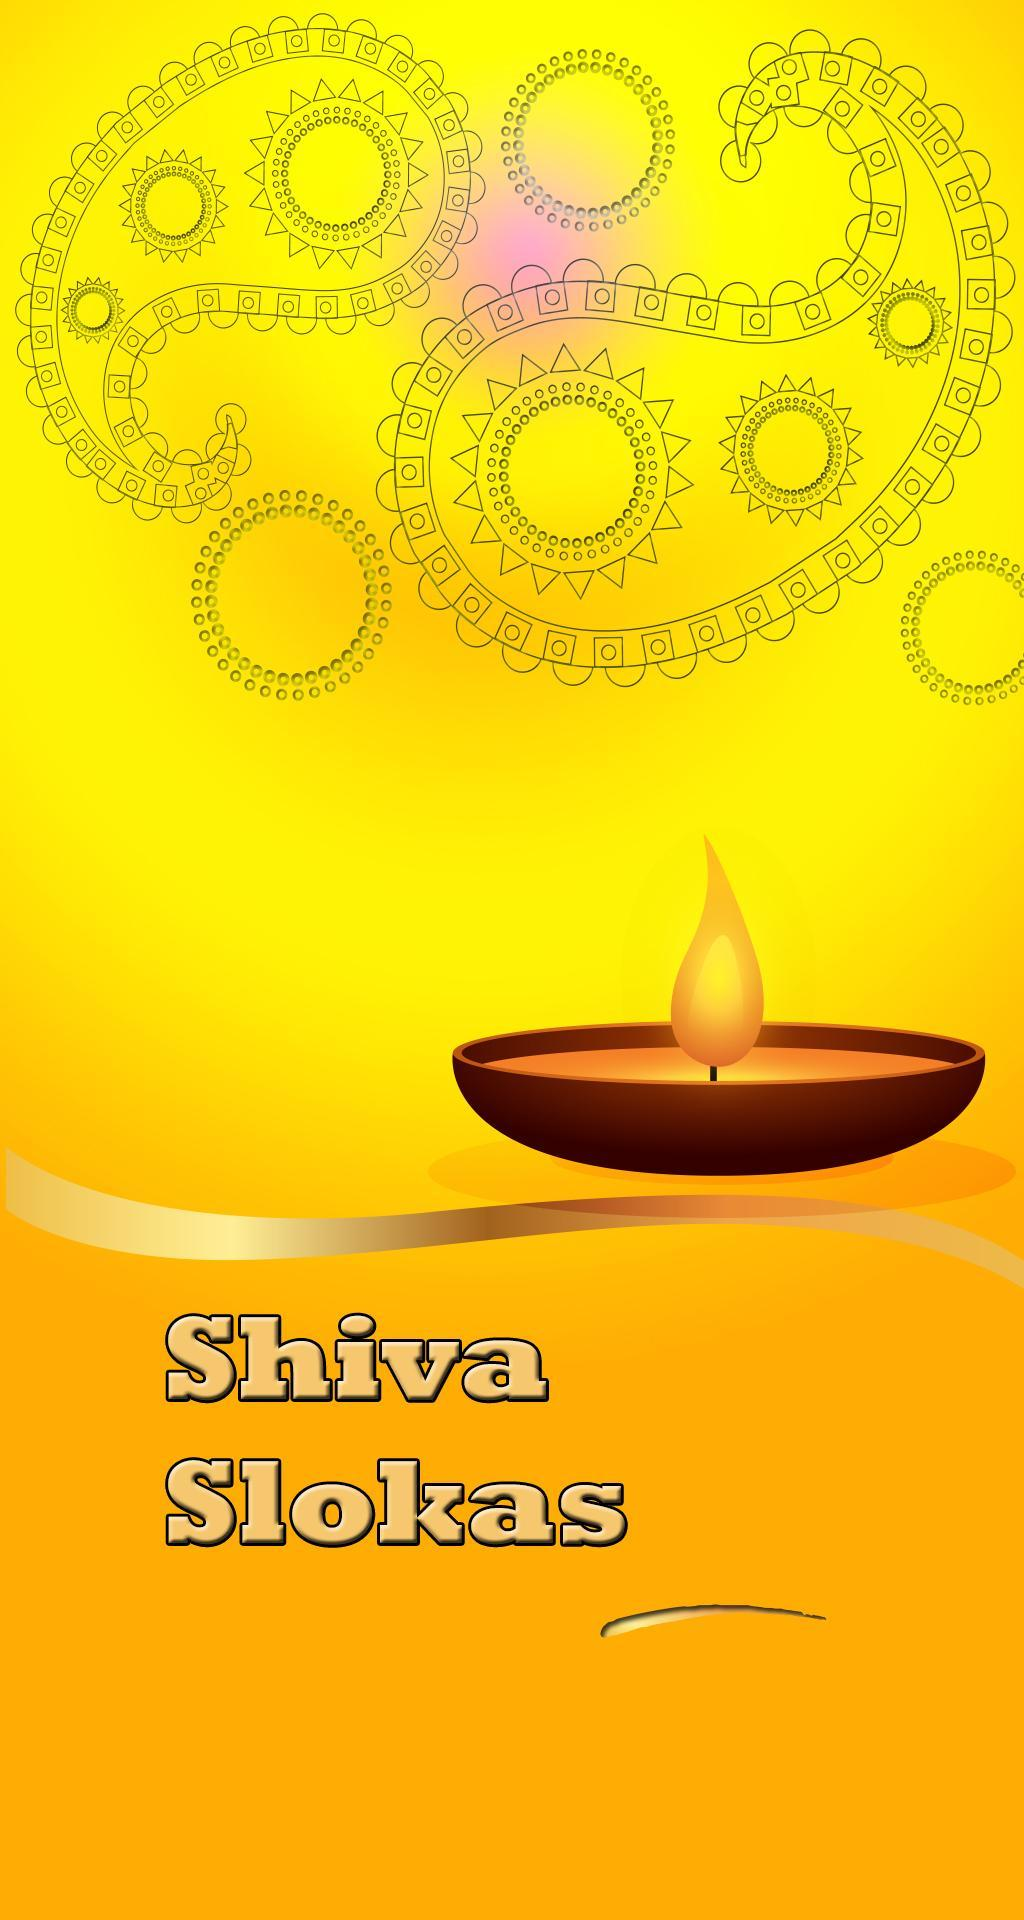 Powerful Lord Shiva Mantra/Slokas for Android - APK Download